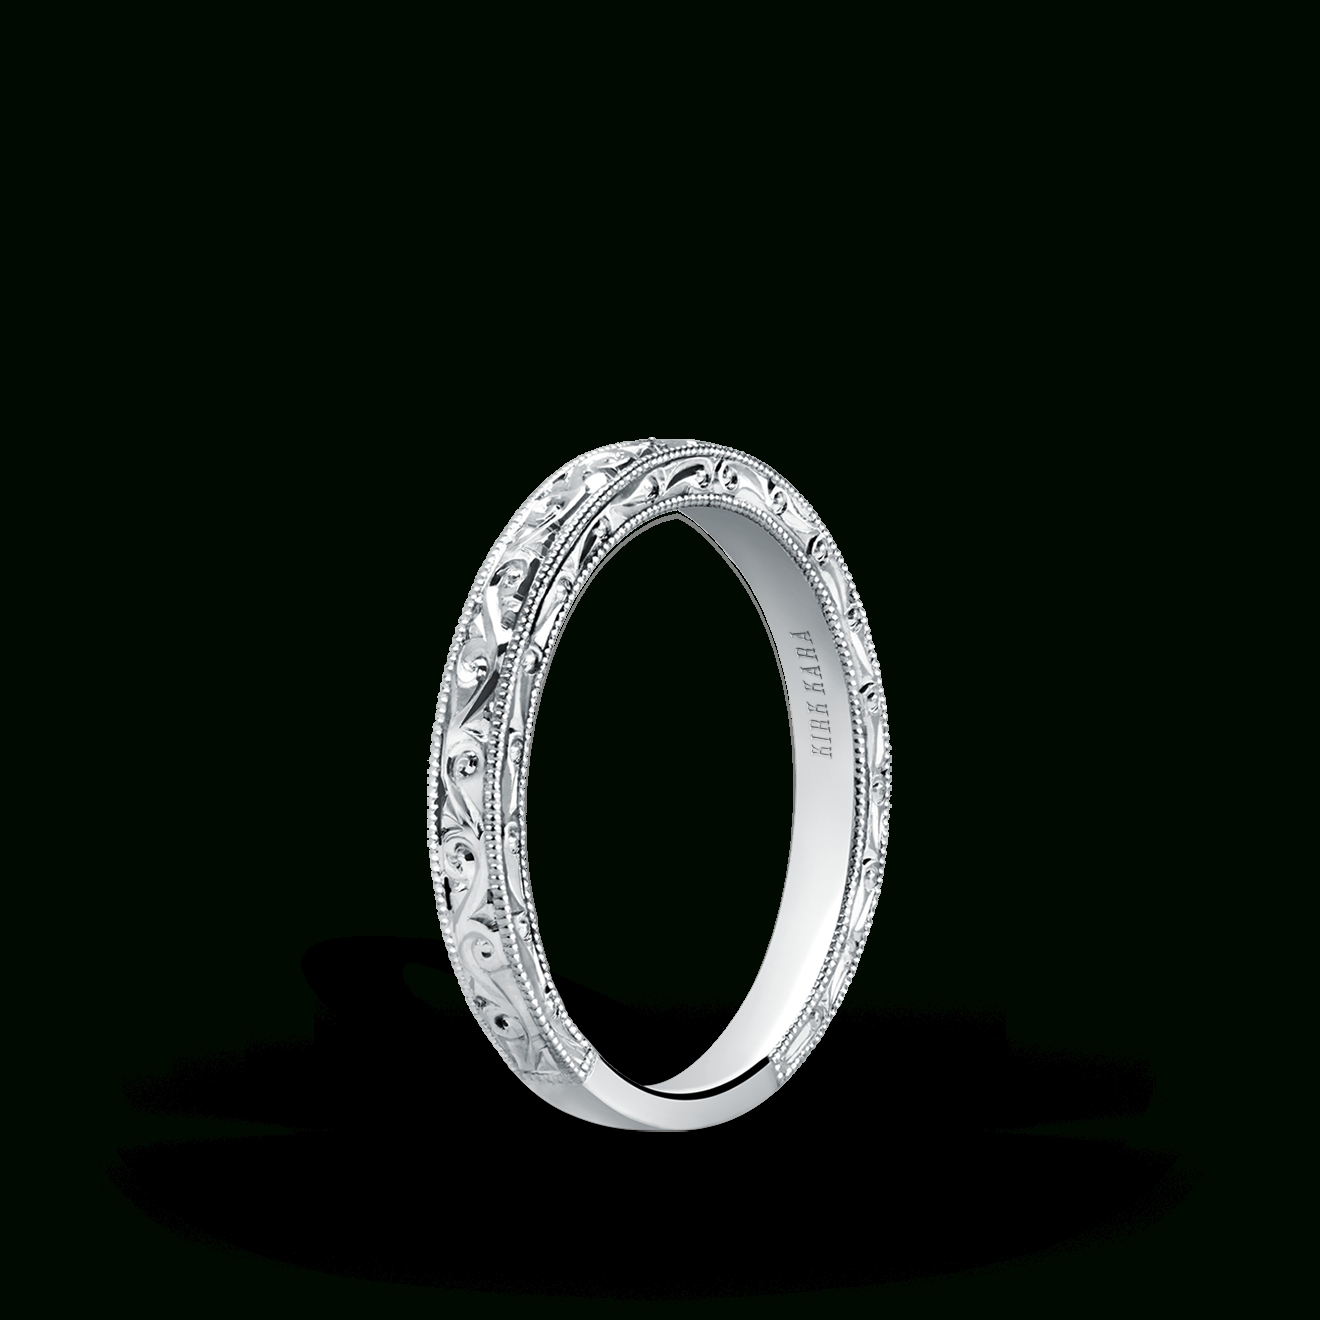 Wedding rings without